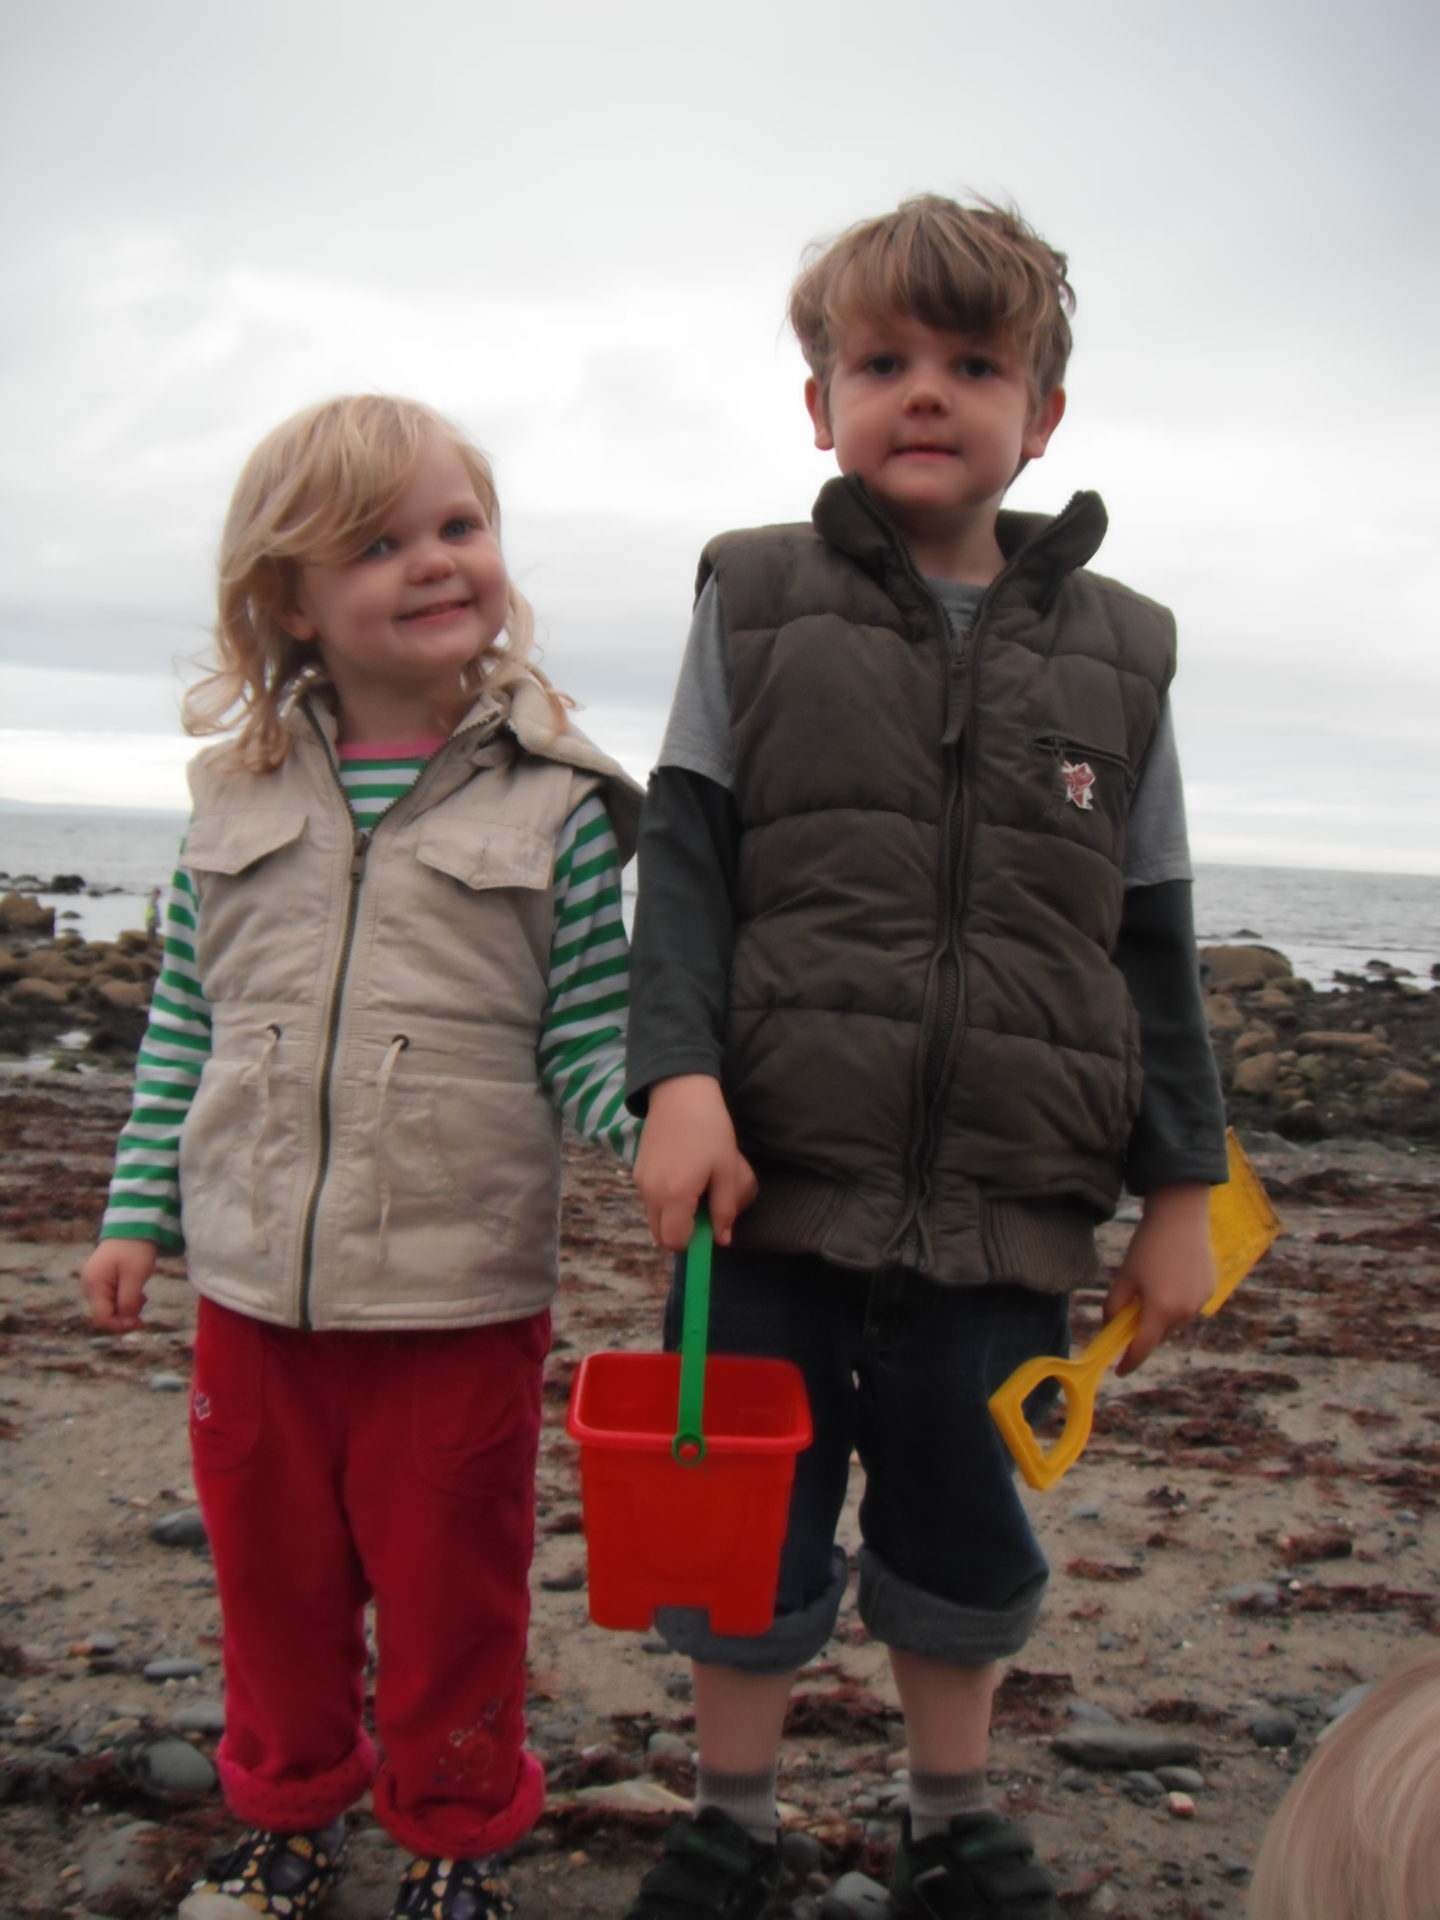 Rockpooling requires very little equipment